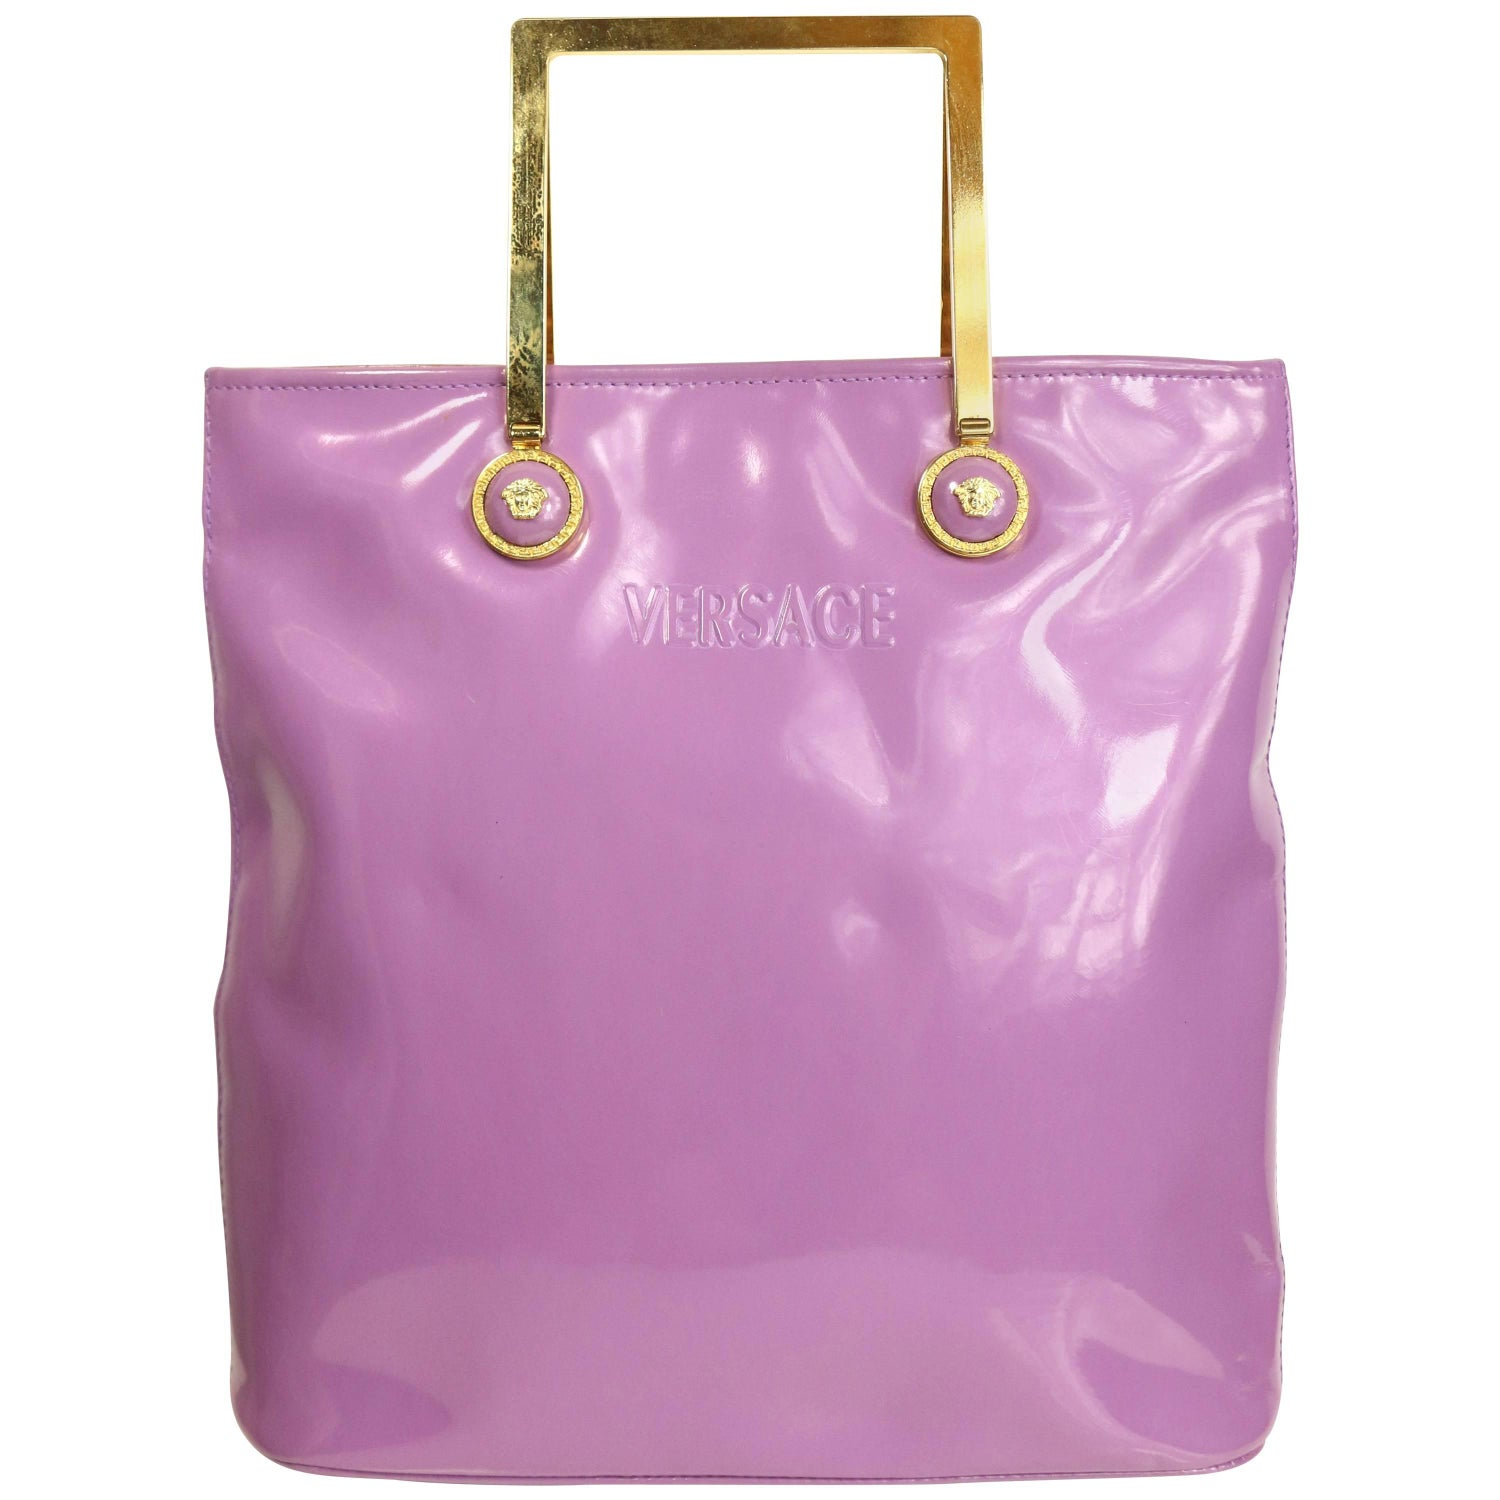 b9dd49260f Gianni Versace Purple Patent Leather with Gold Toned Hardware Handle Tote  Bag